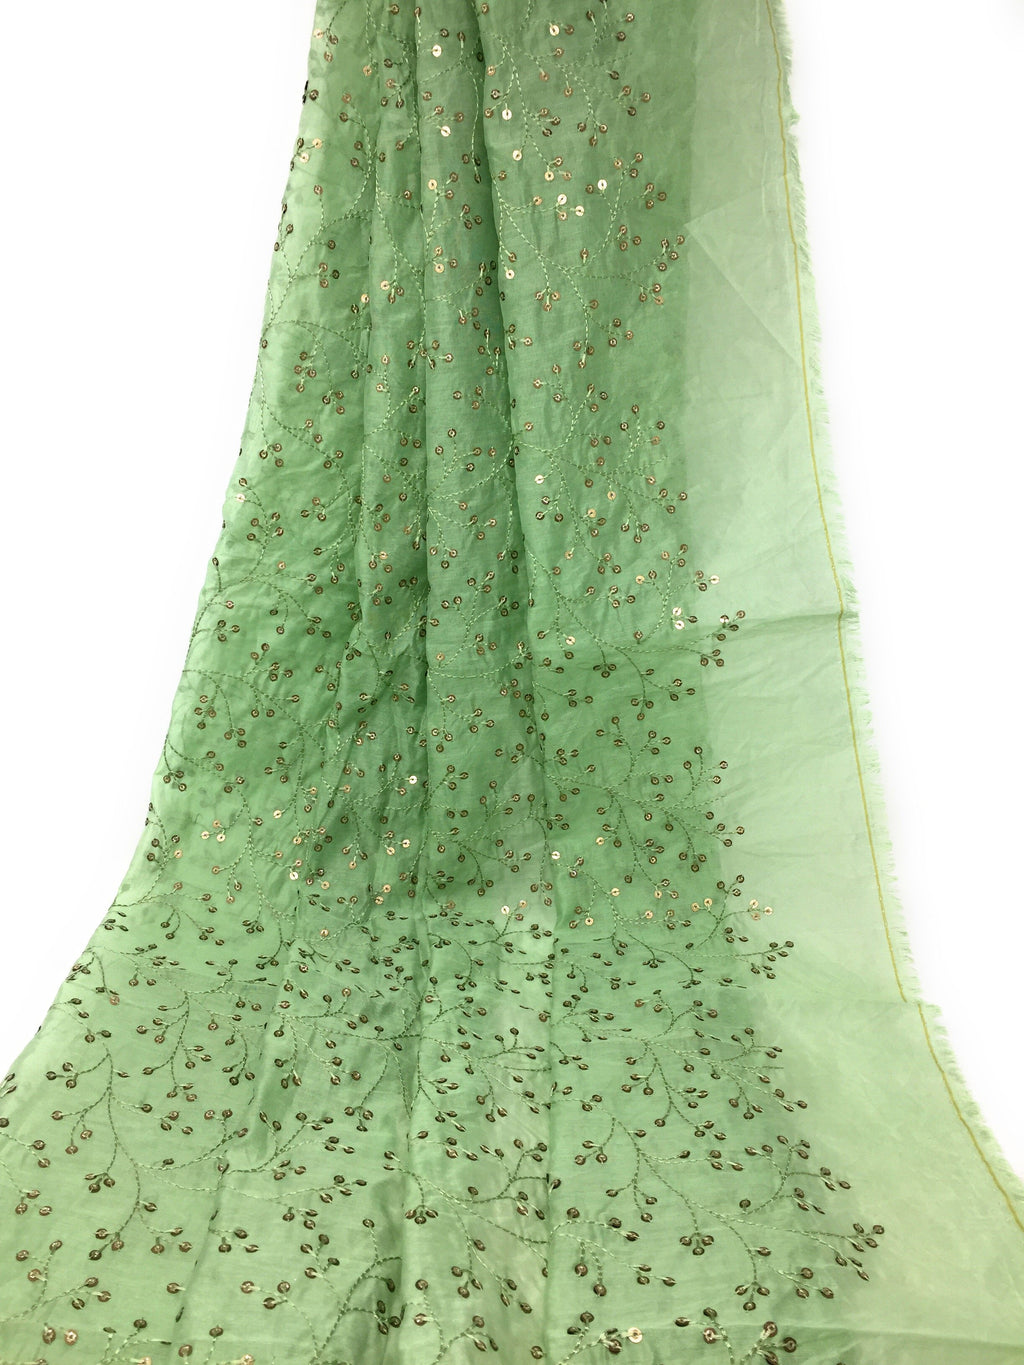 Green Chanderi Fabric, Self Threadwork, Green Sequins Embroidery